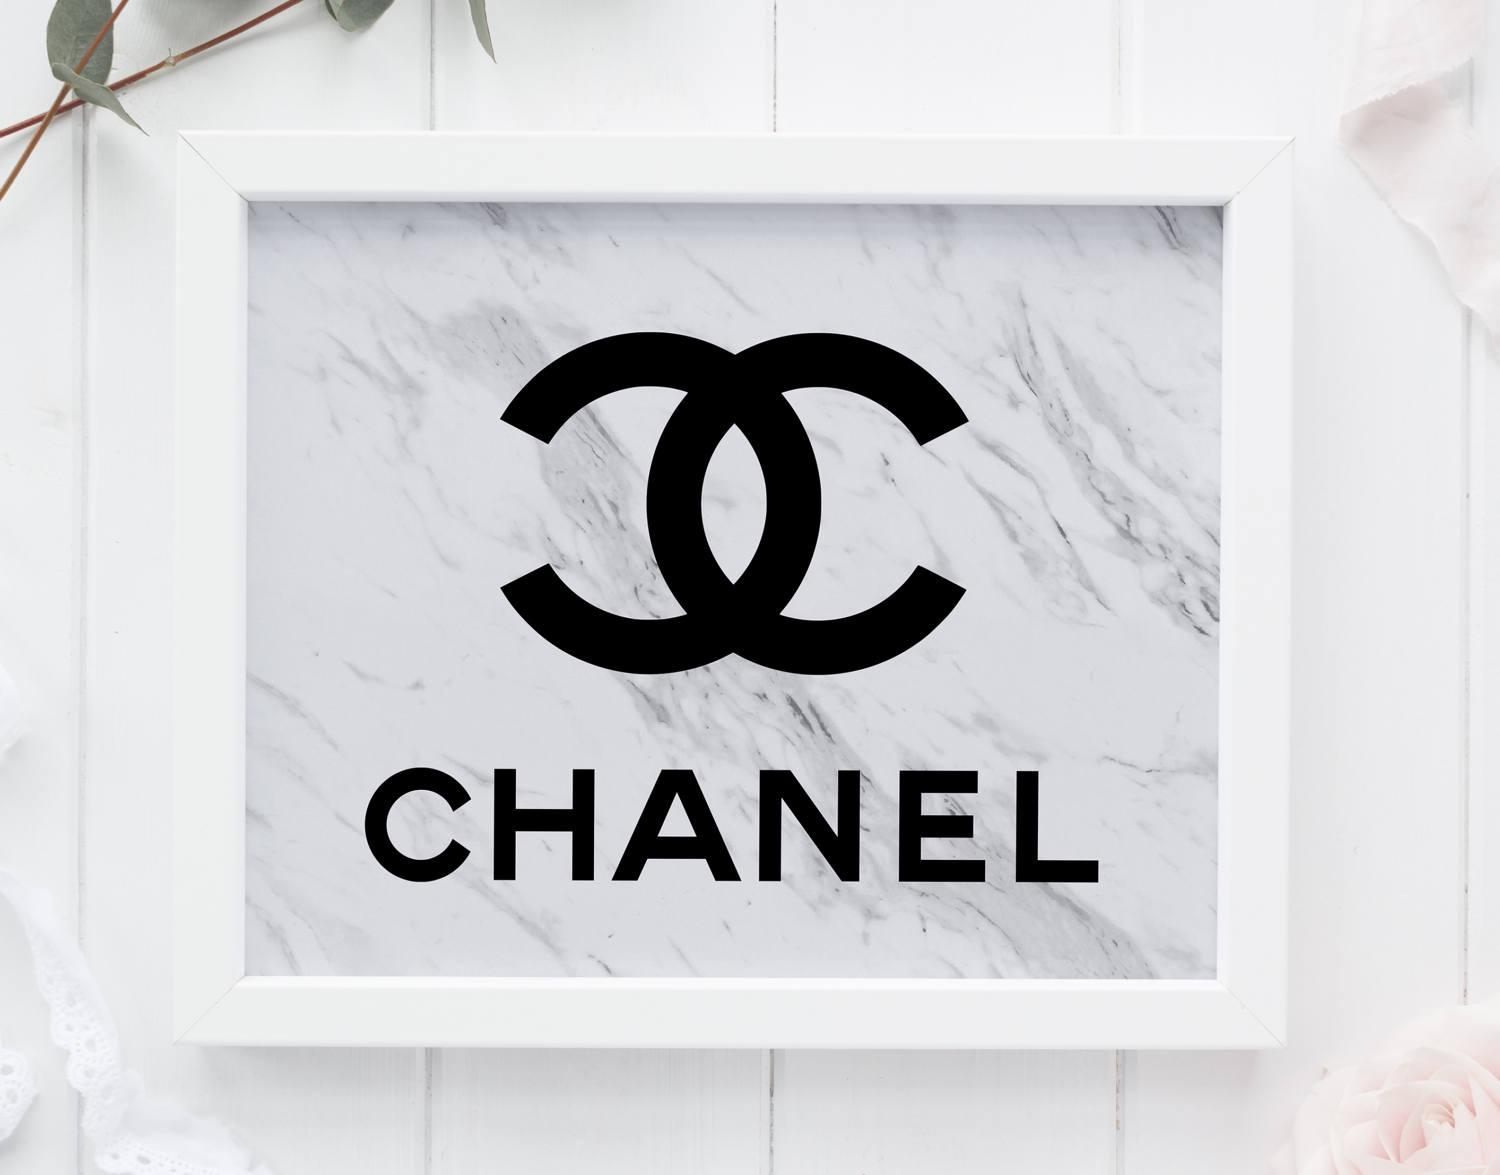 Marble Coco Chanel Tumblr Room Decor Chanel Wall Art Marble Pertaining To Chanel Wall Decor (Image 17 of 20)